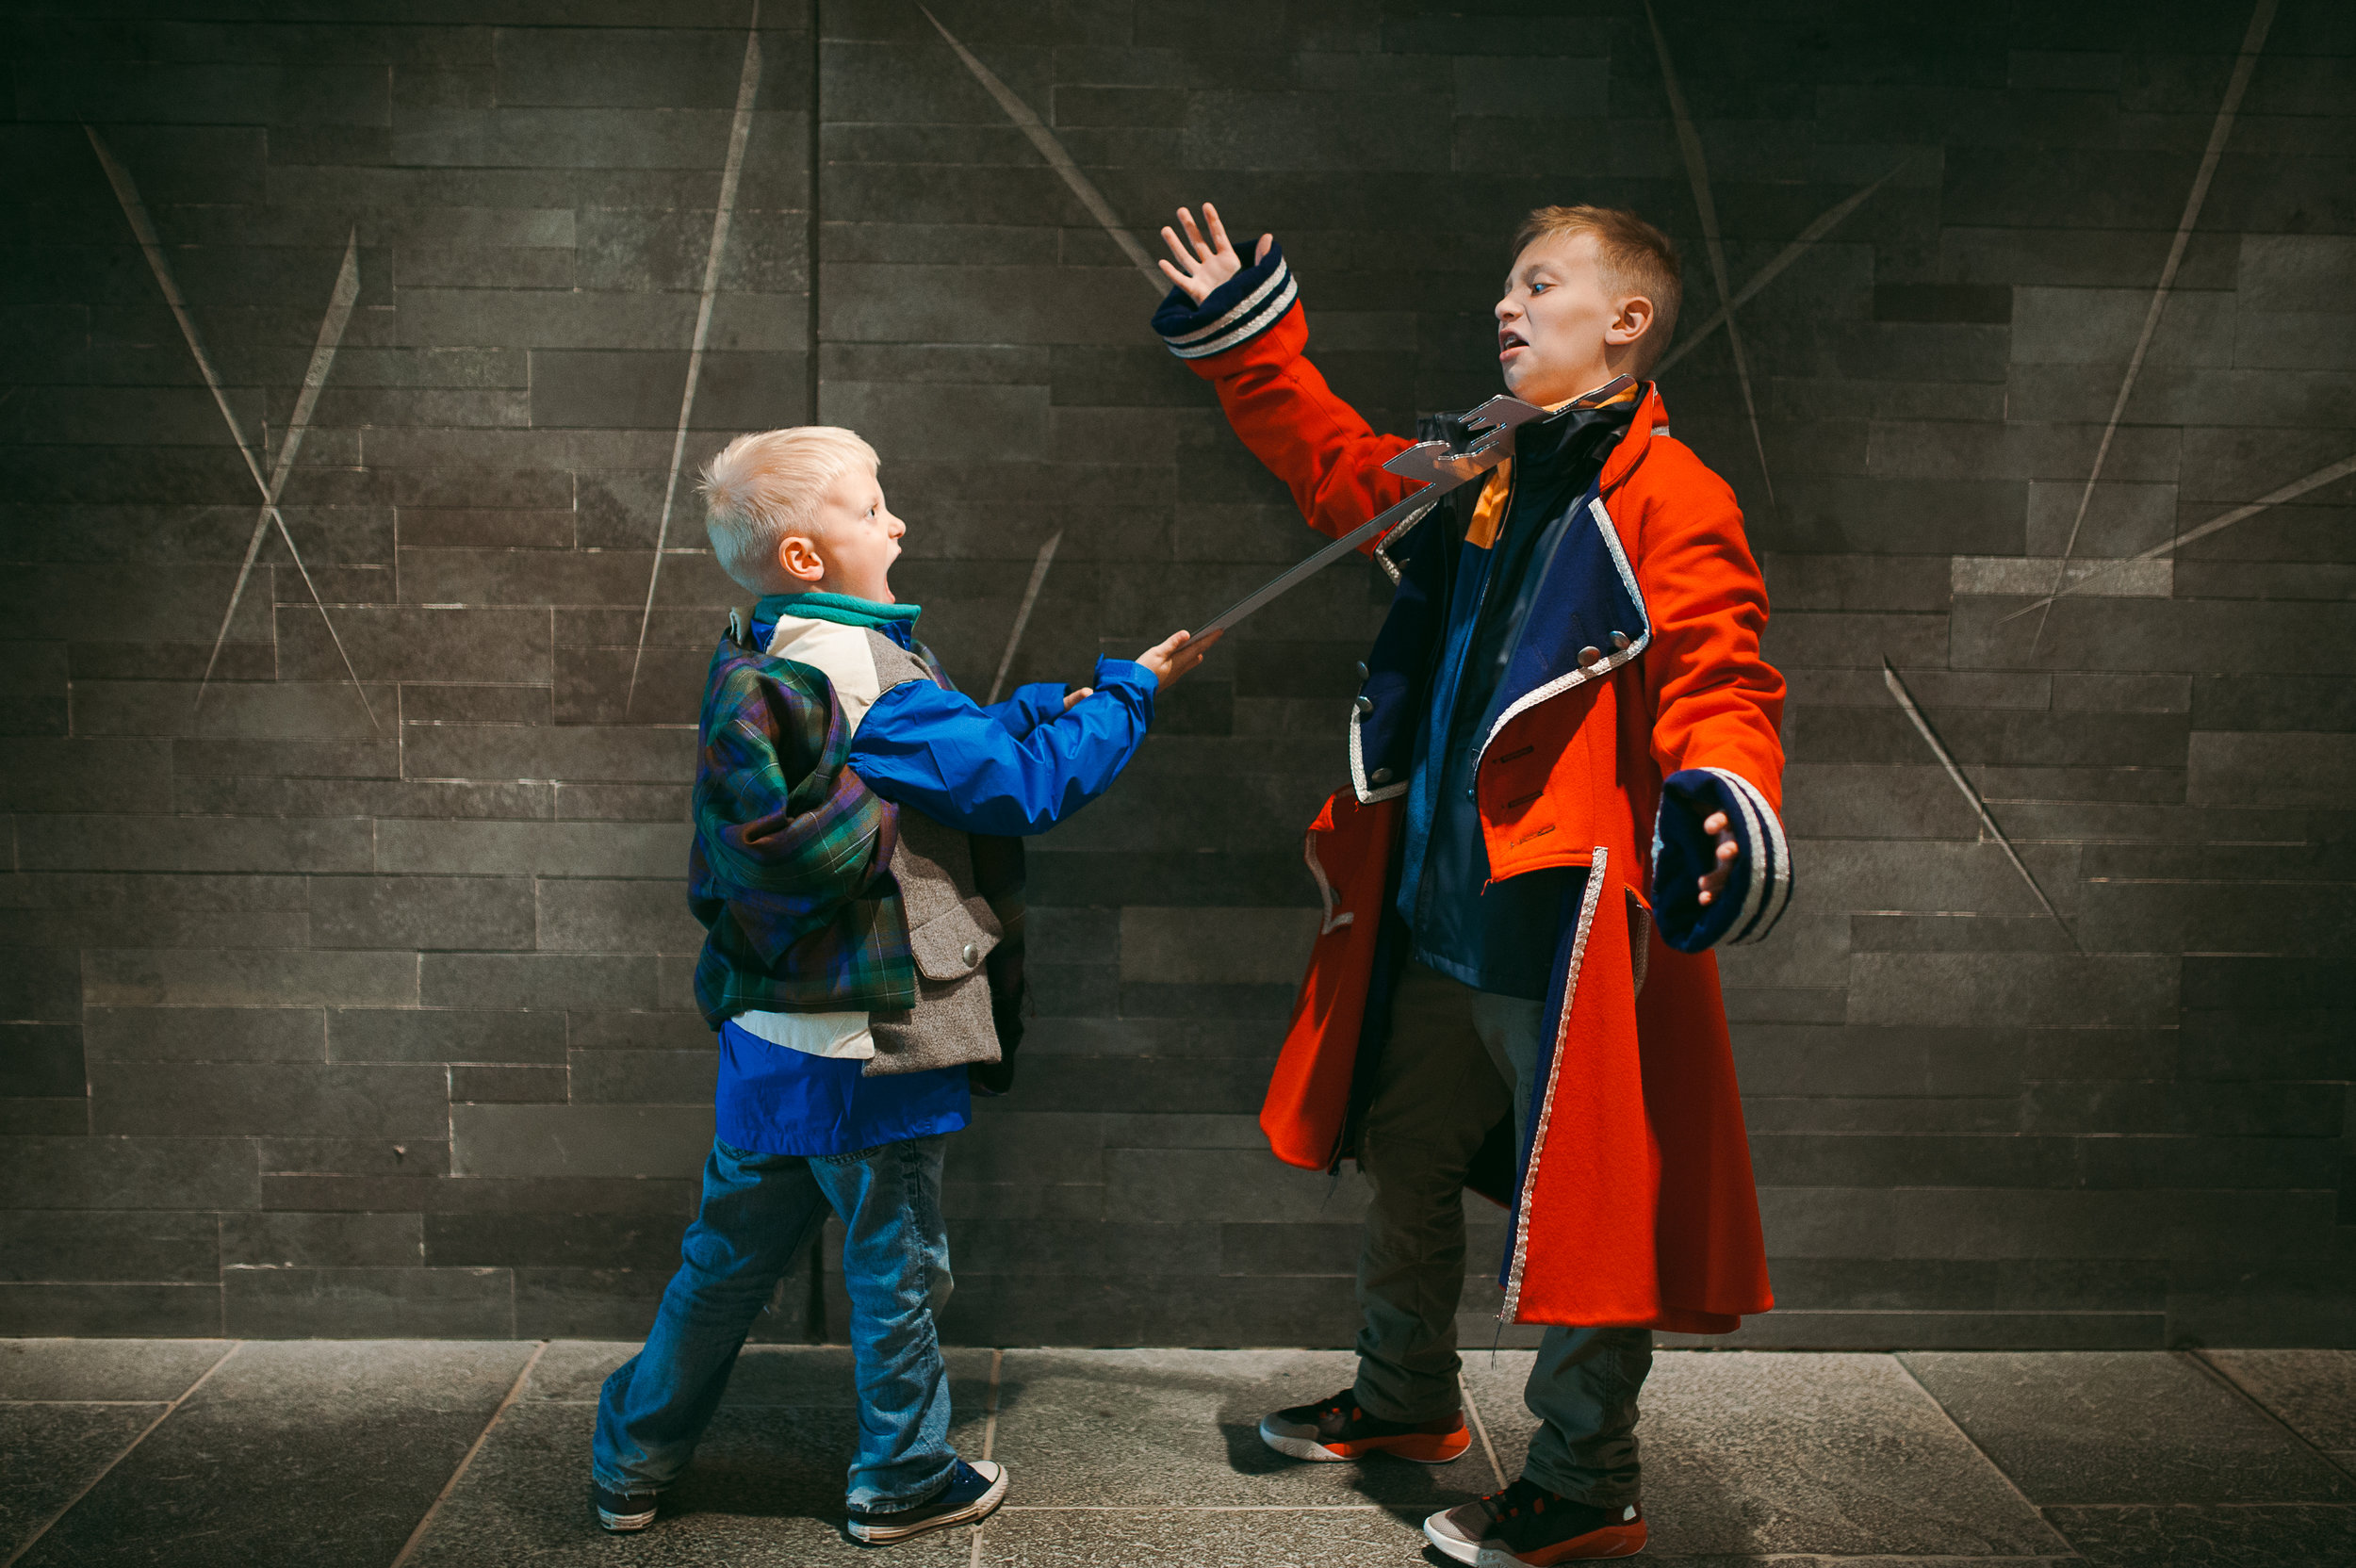 the boys reenact the 1745 battle of Culloden between the Highlanders and British